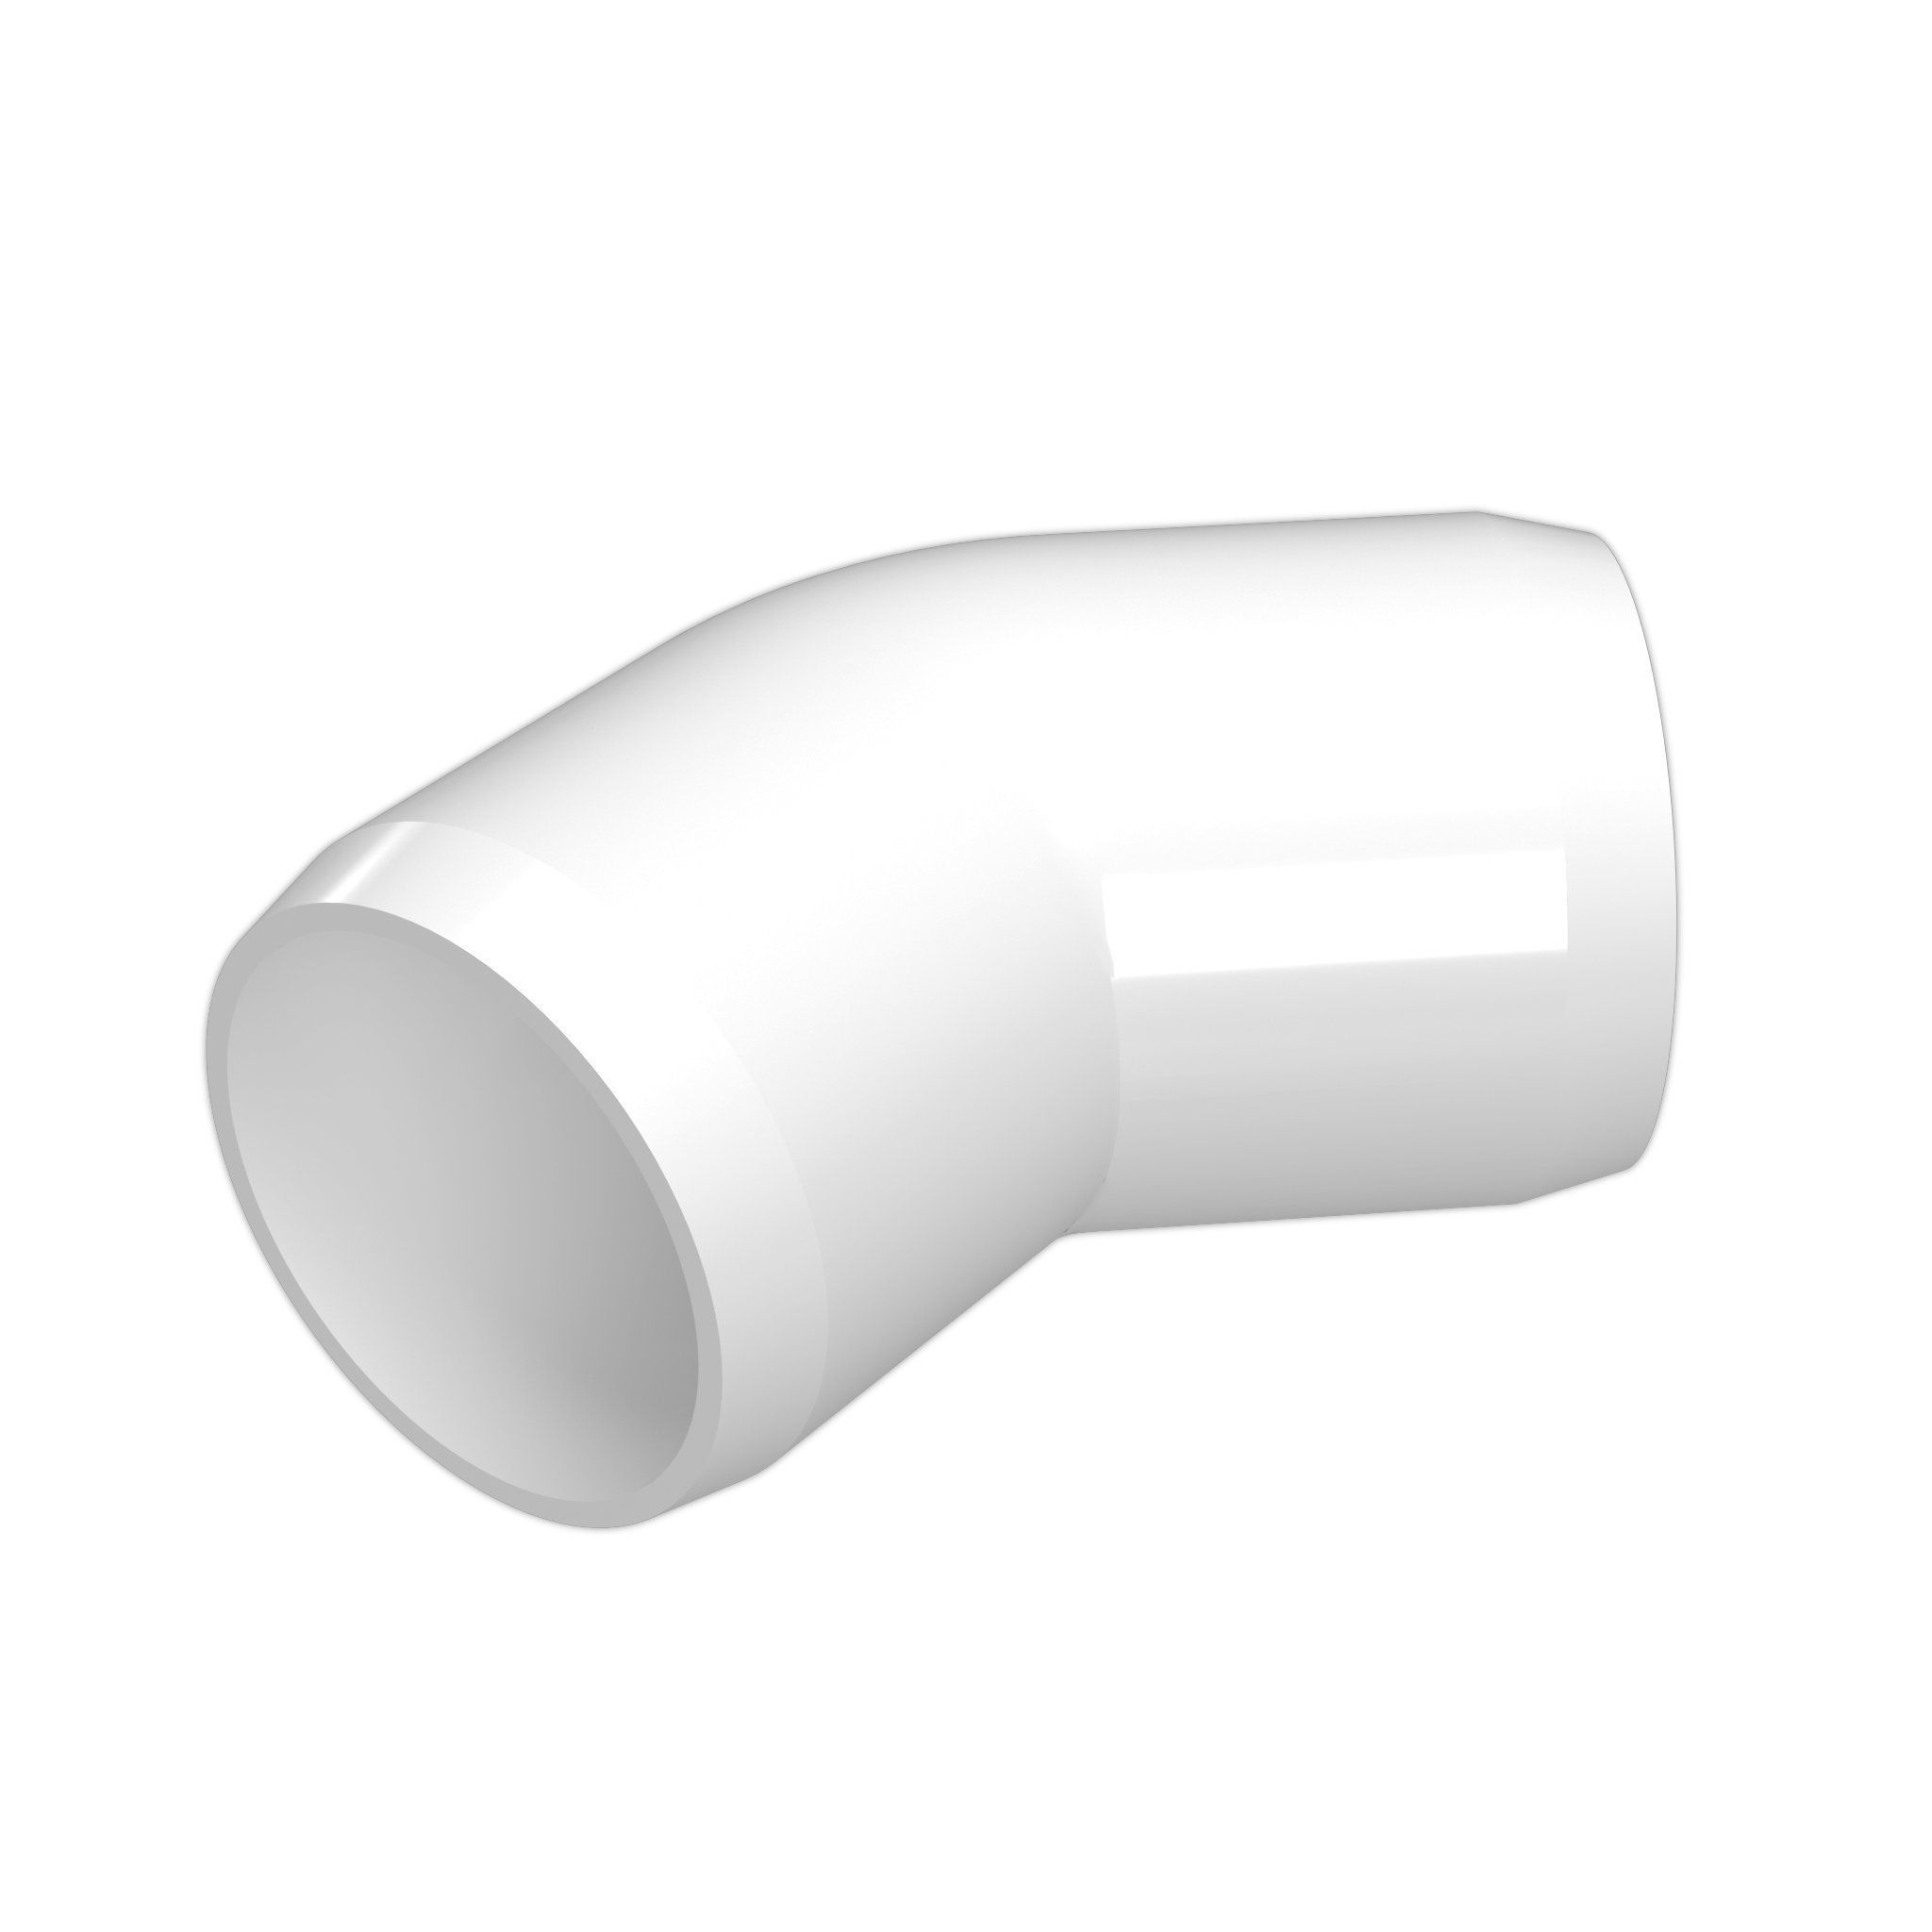 1 2 45 Degree Pvc Fitting Furniture Grade In 2020 Pvc Fittings Furniture Grade Pvc Pvc